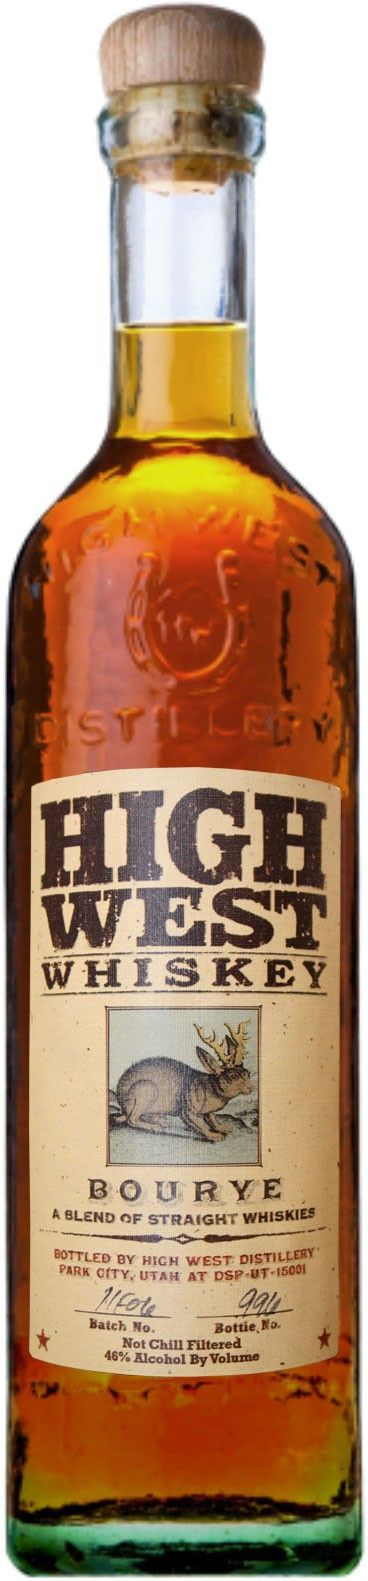 High West proves how good NDP whiskey can be. Very reasonably priced considered the quality of the component whiskies in the blend.